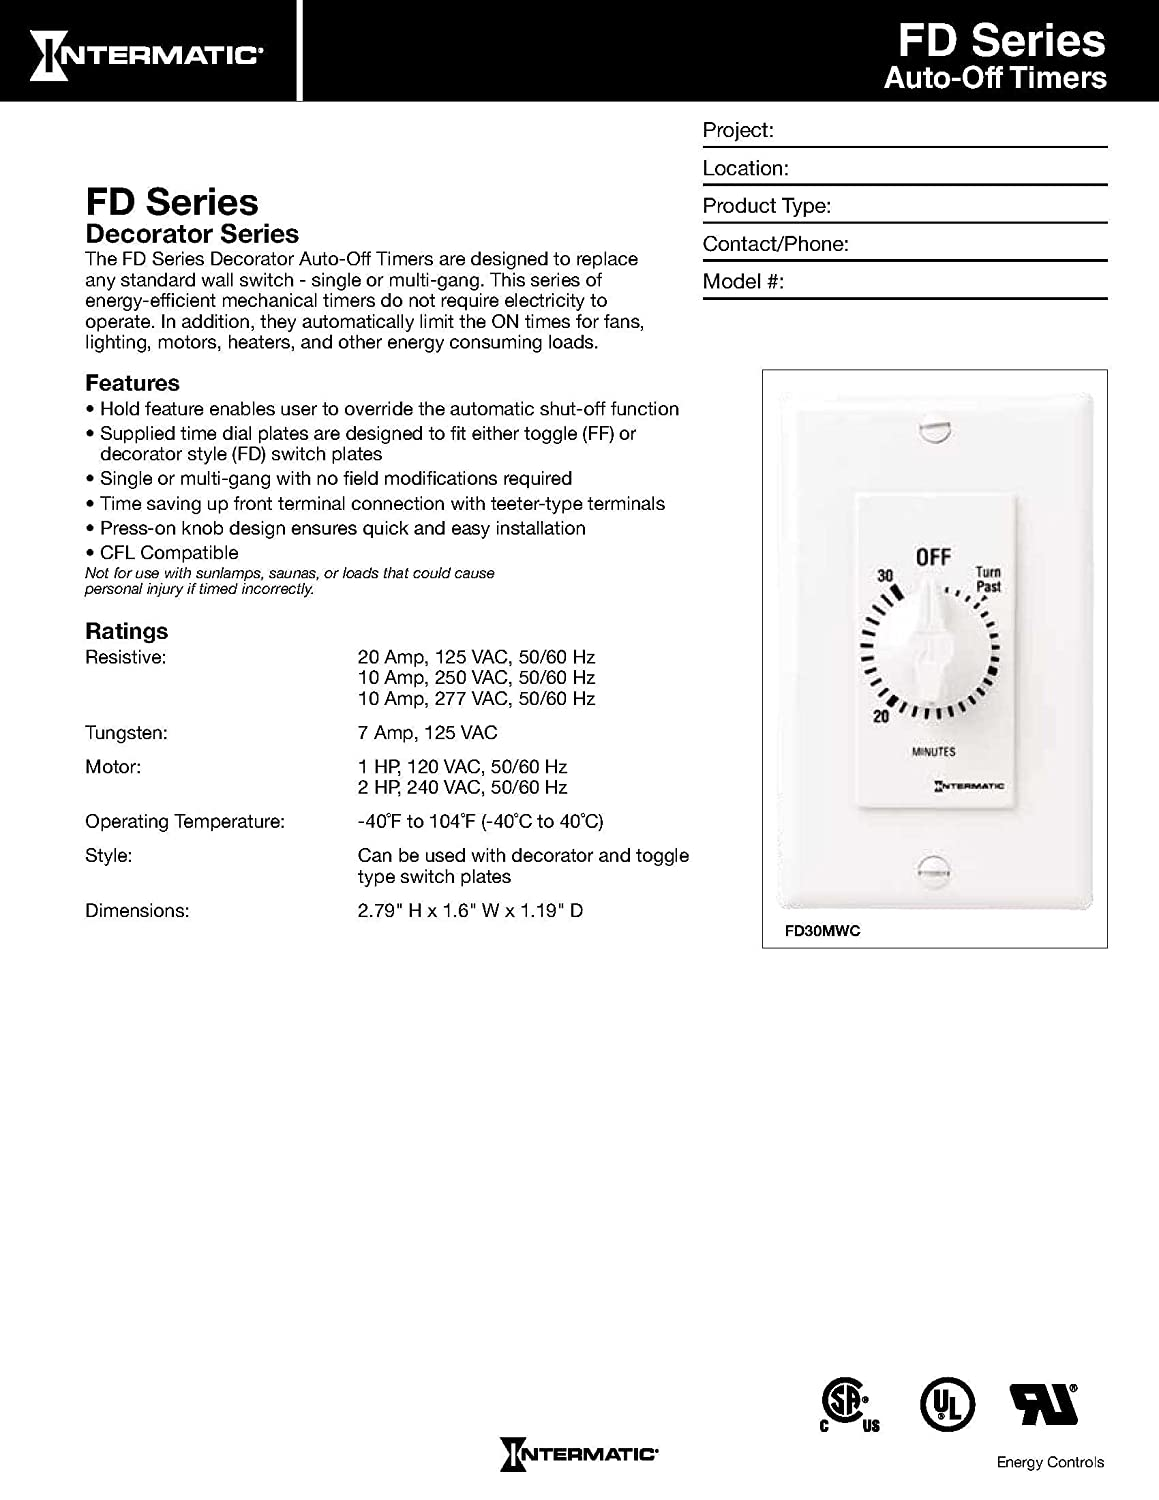 Intermatic Fd30mwc 30 Minute Countdown Wall Timer For Fans And Rrsspdt Spdt Round Rocker Switch Lights White Spa Equipment Supplies